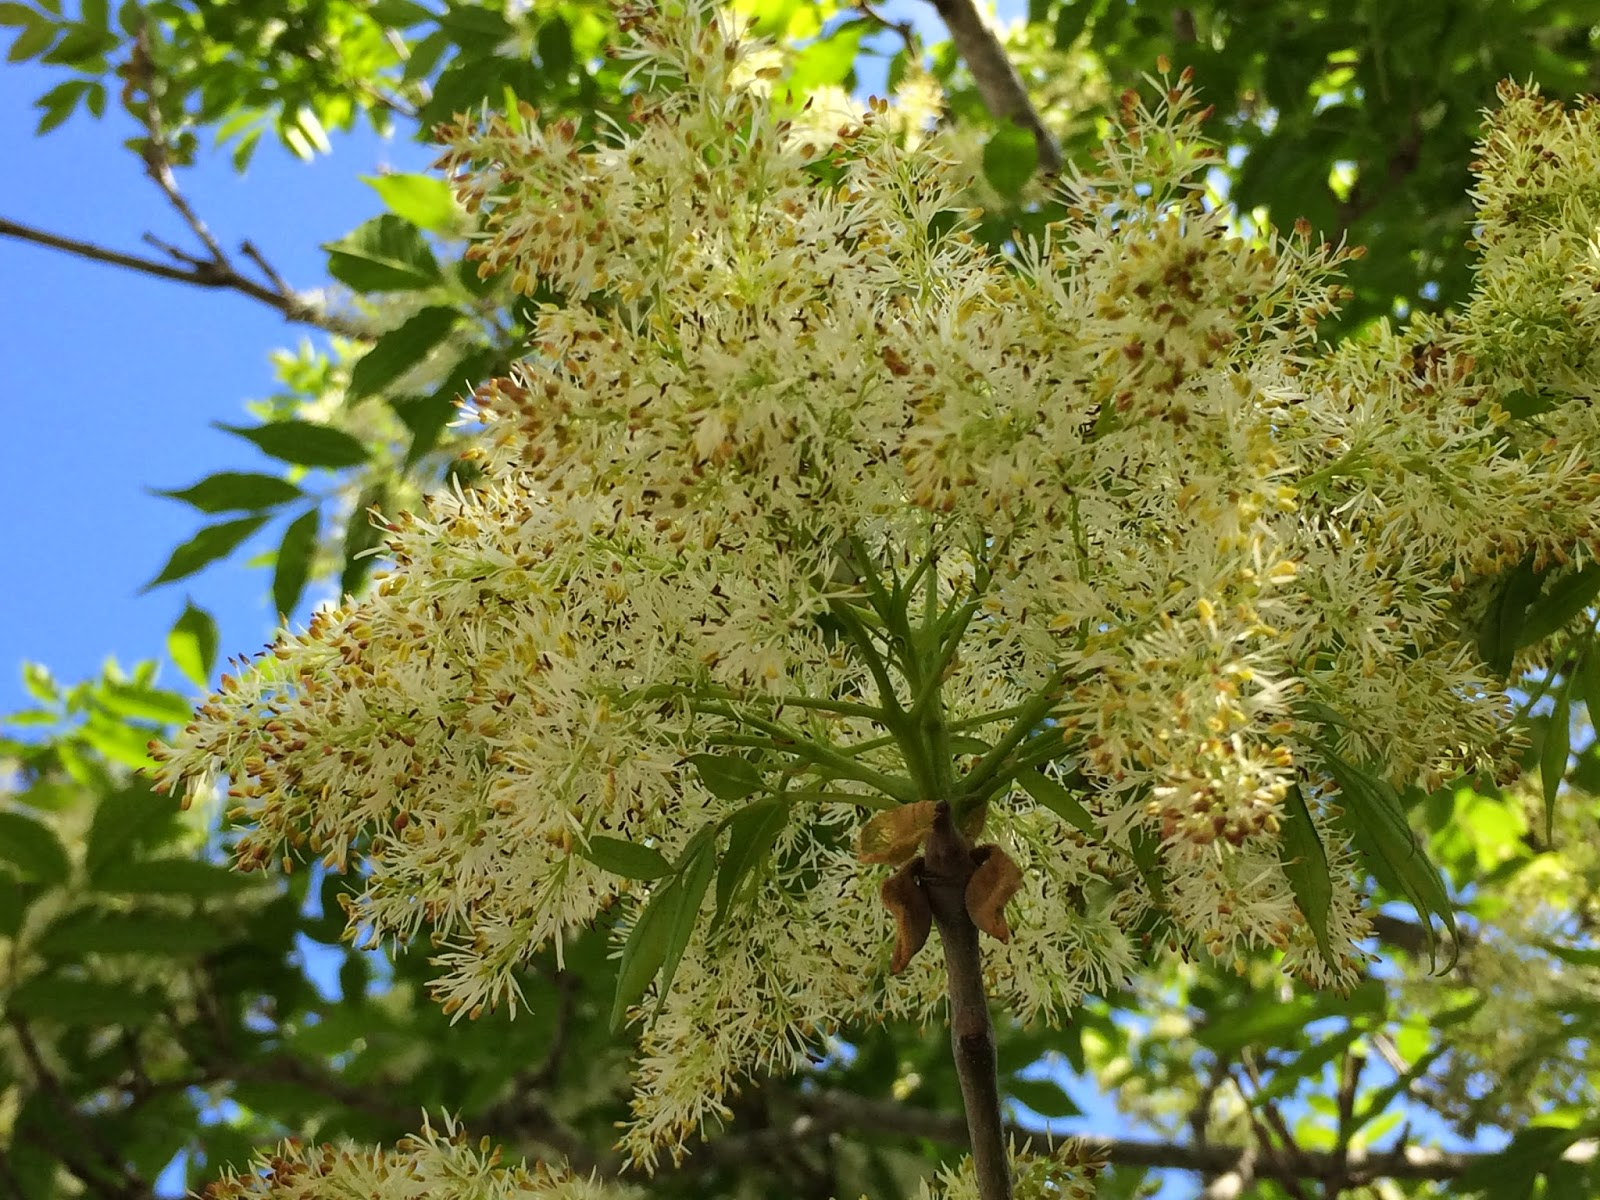 Trees of santa cruz county fraxinus ornus flowering ash the flowers are borne in very showy panicles emerging with the spring foliage males with two stamens four white strap like petals and fragrant mightylinksfo